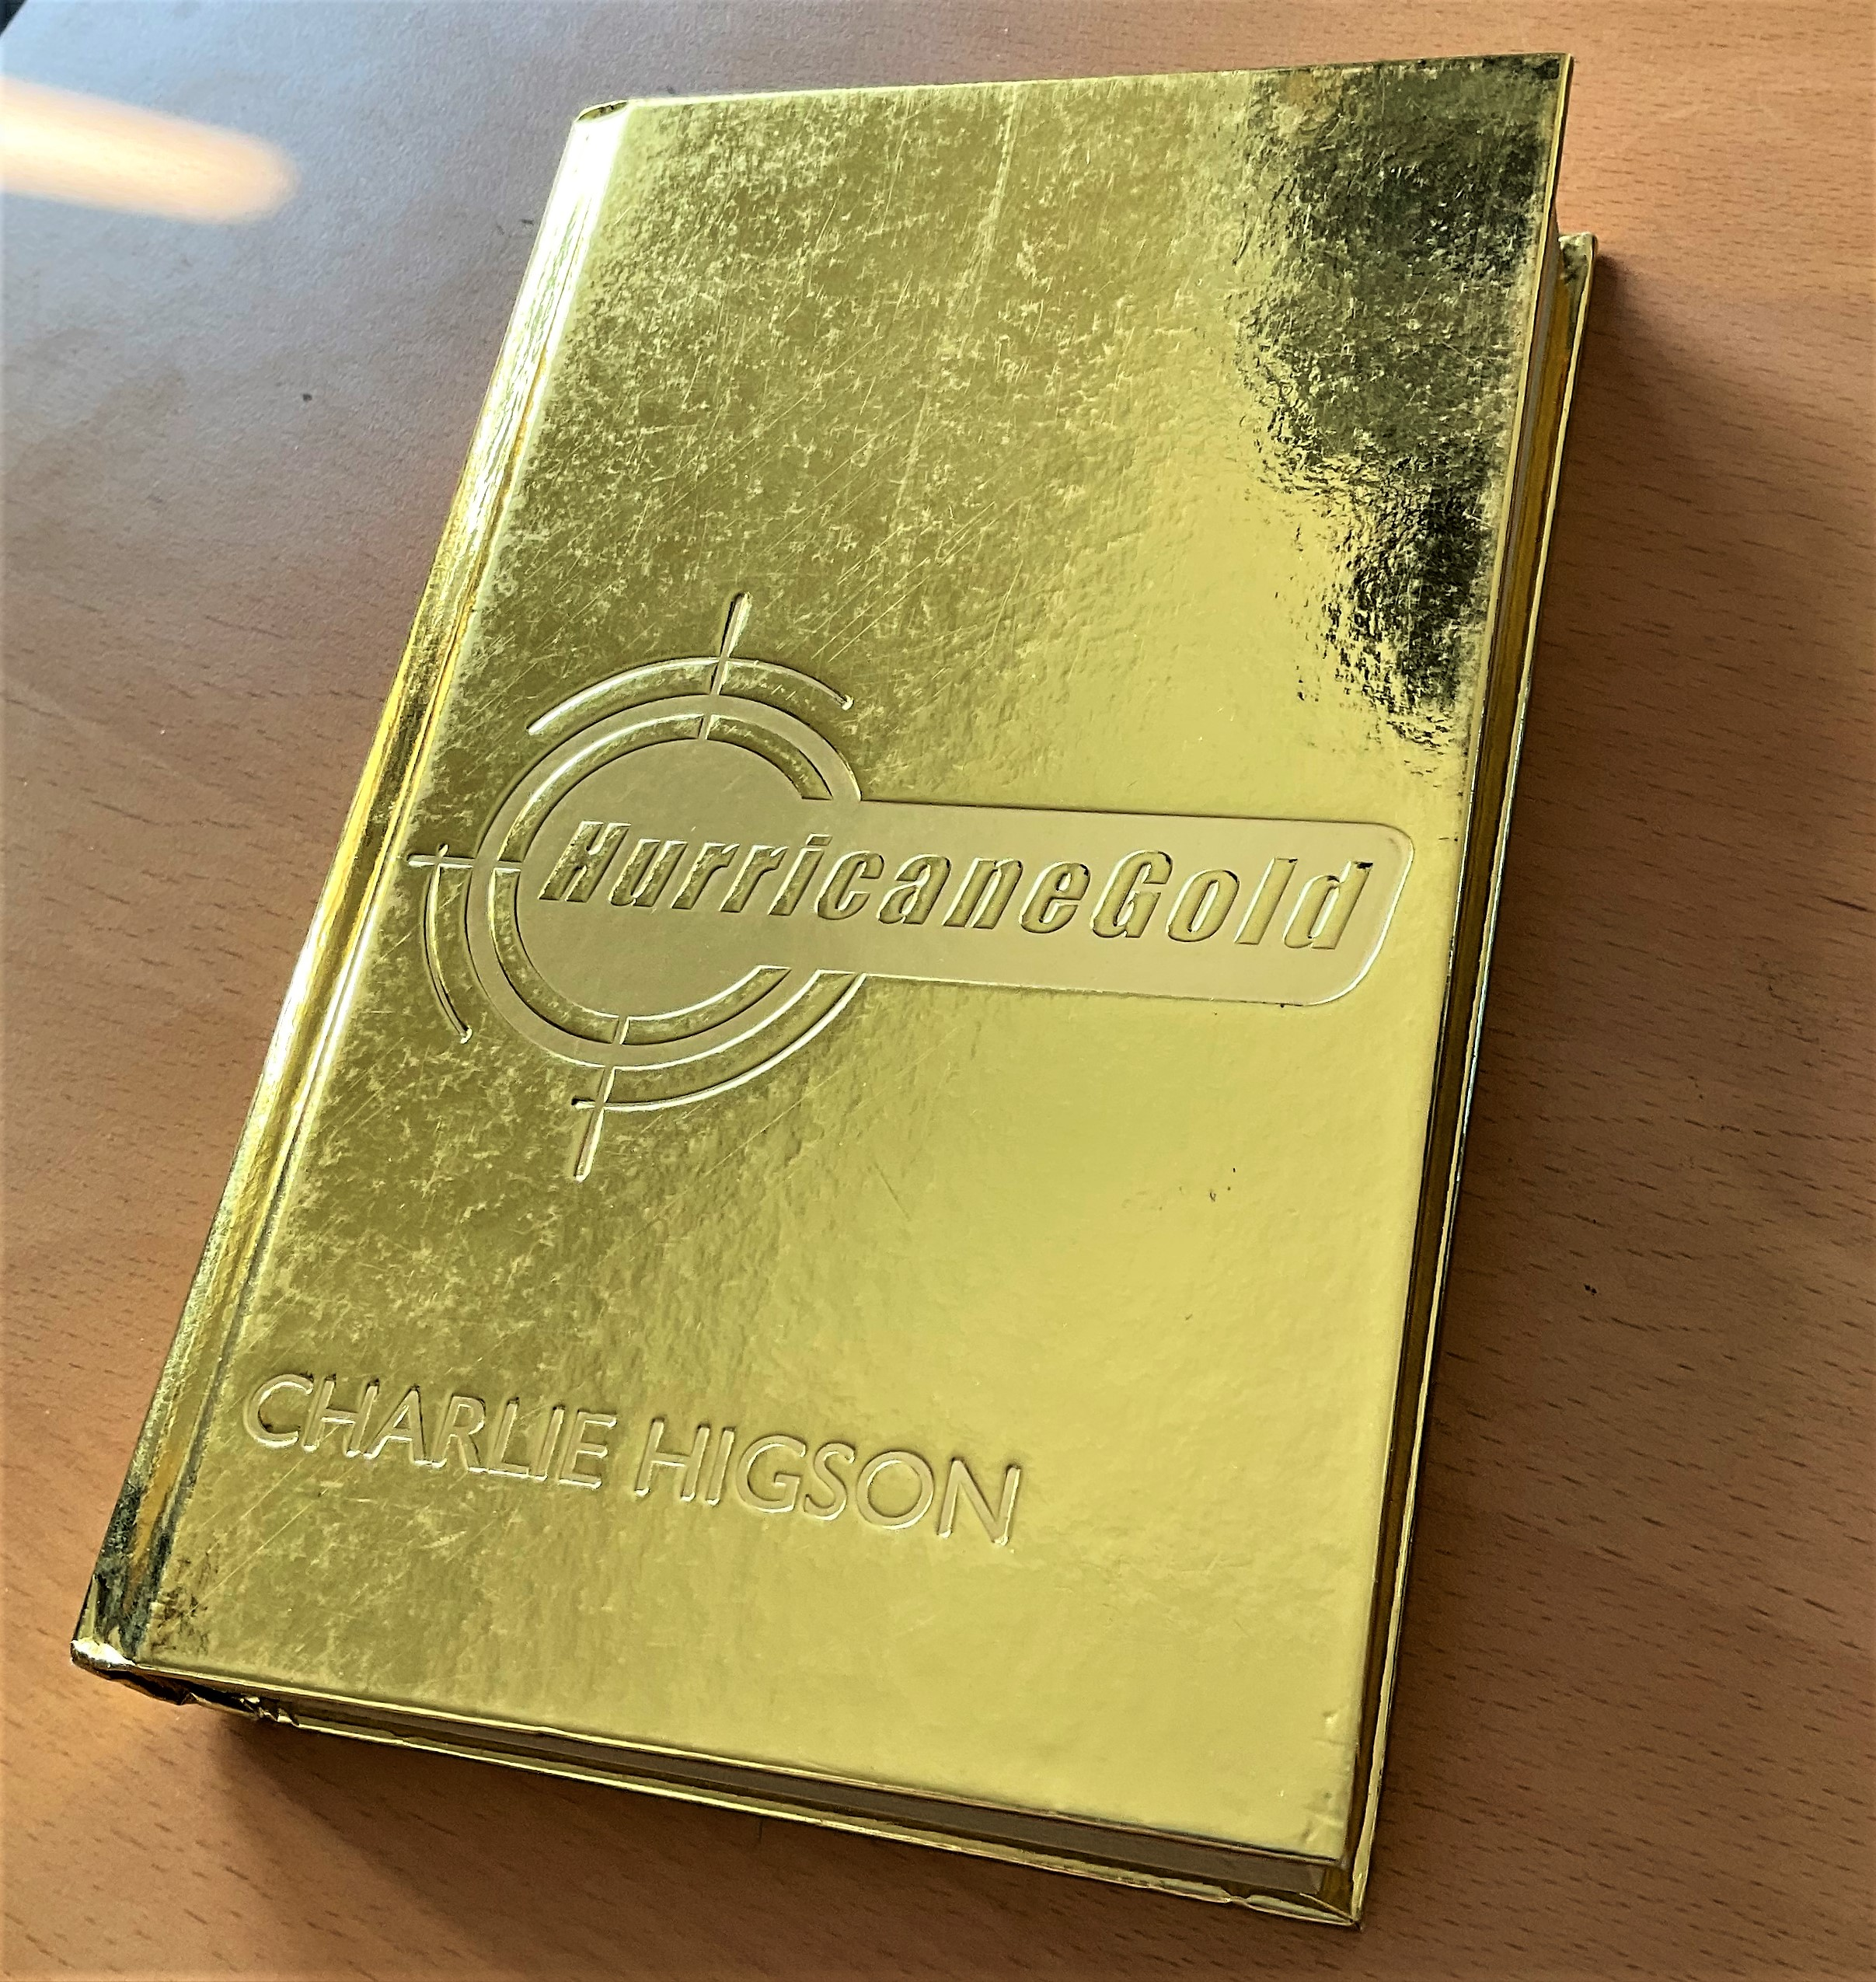 Charlie Higson signed hardback gold leafed book titled Hurricane Gold. This beautiful book has a - Image 2 of 3